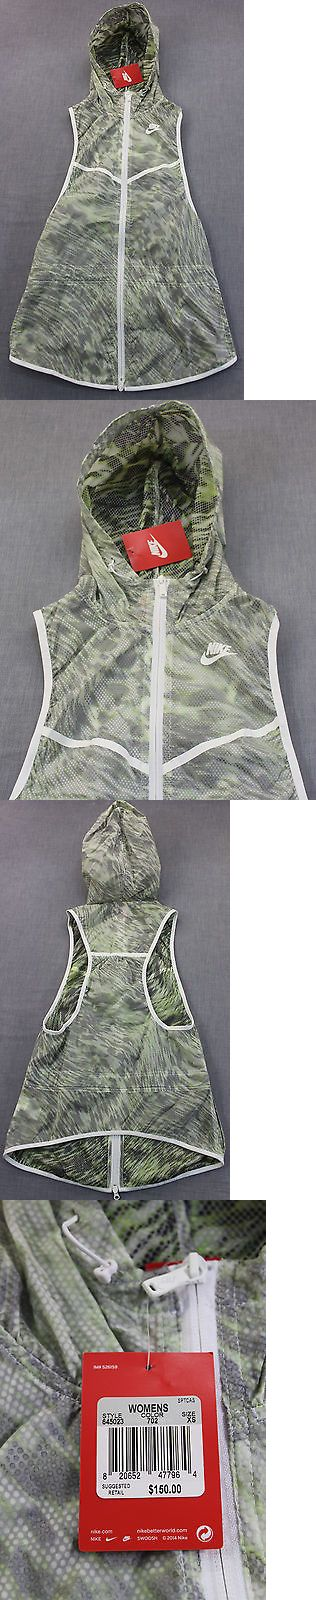 Jackets and Vests 59285: Nike Women Volt Green White Light Tech Hooded Full Zip Running Vest Nwt Xs $150 -> BUY IT NOW ONLY: $59.99 on eBay!